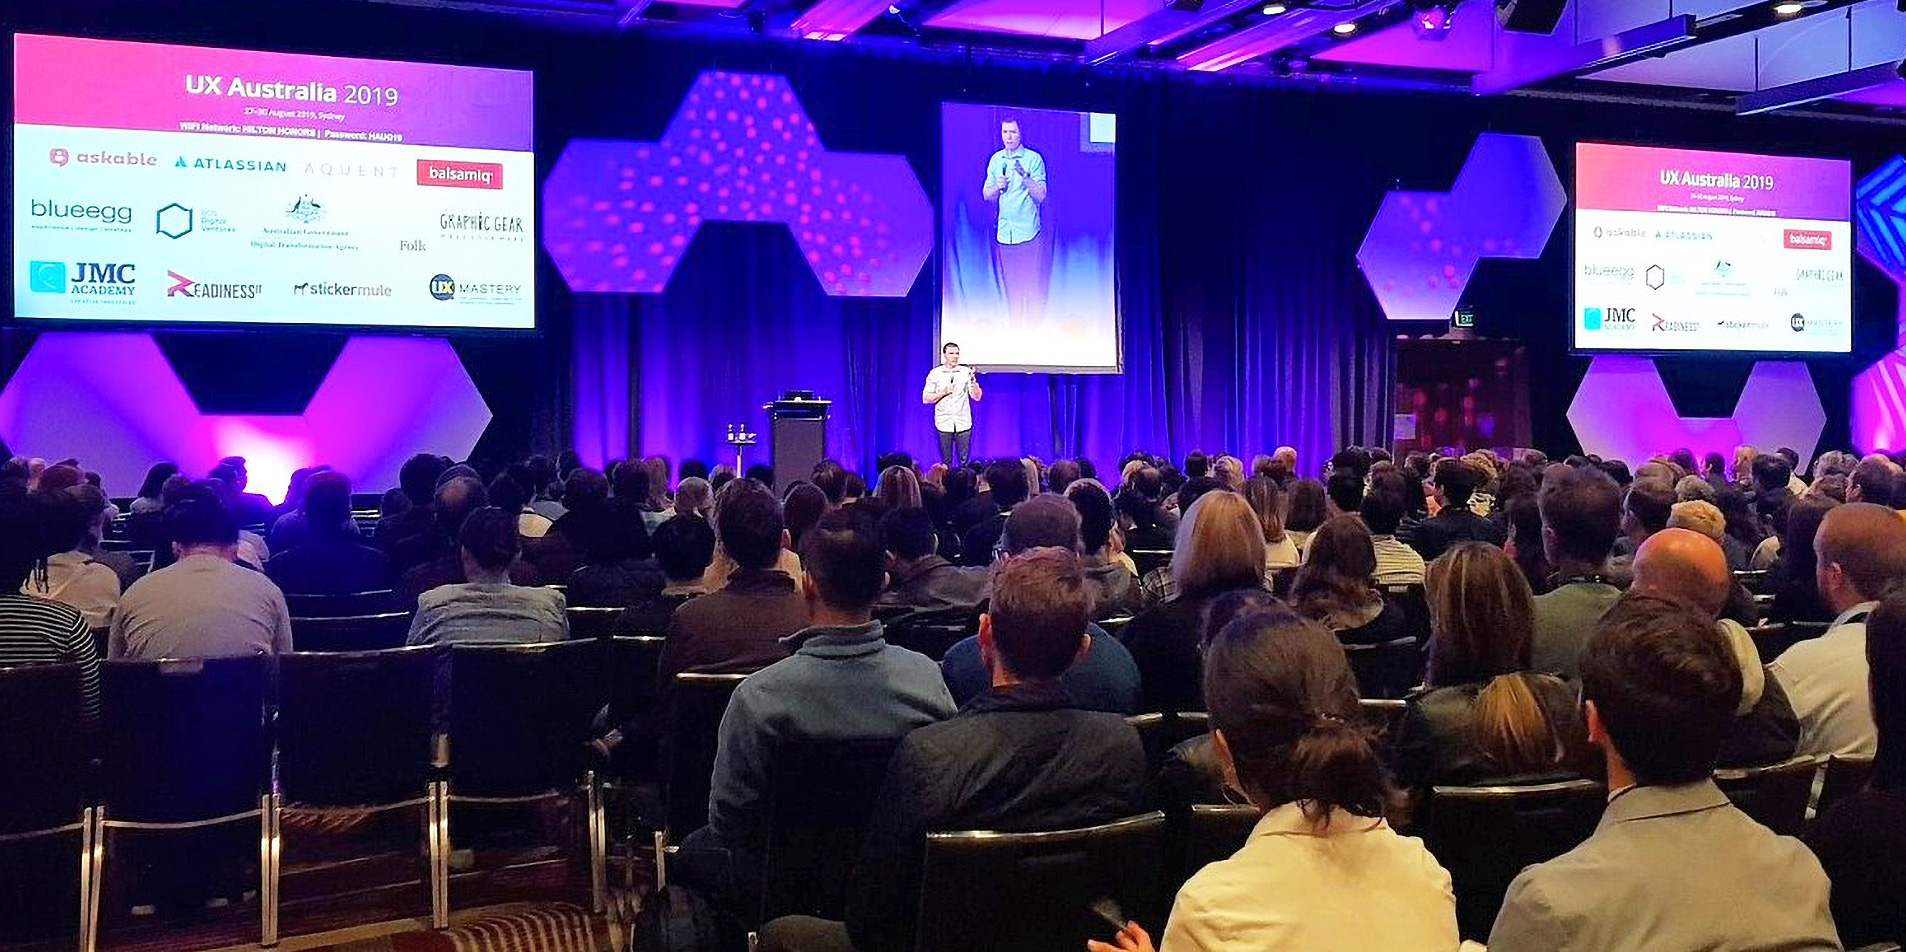 UX Australia is one of the best UX conferences